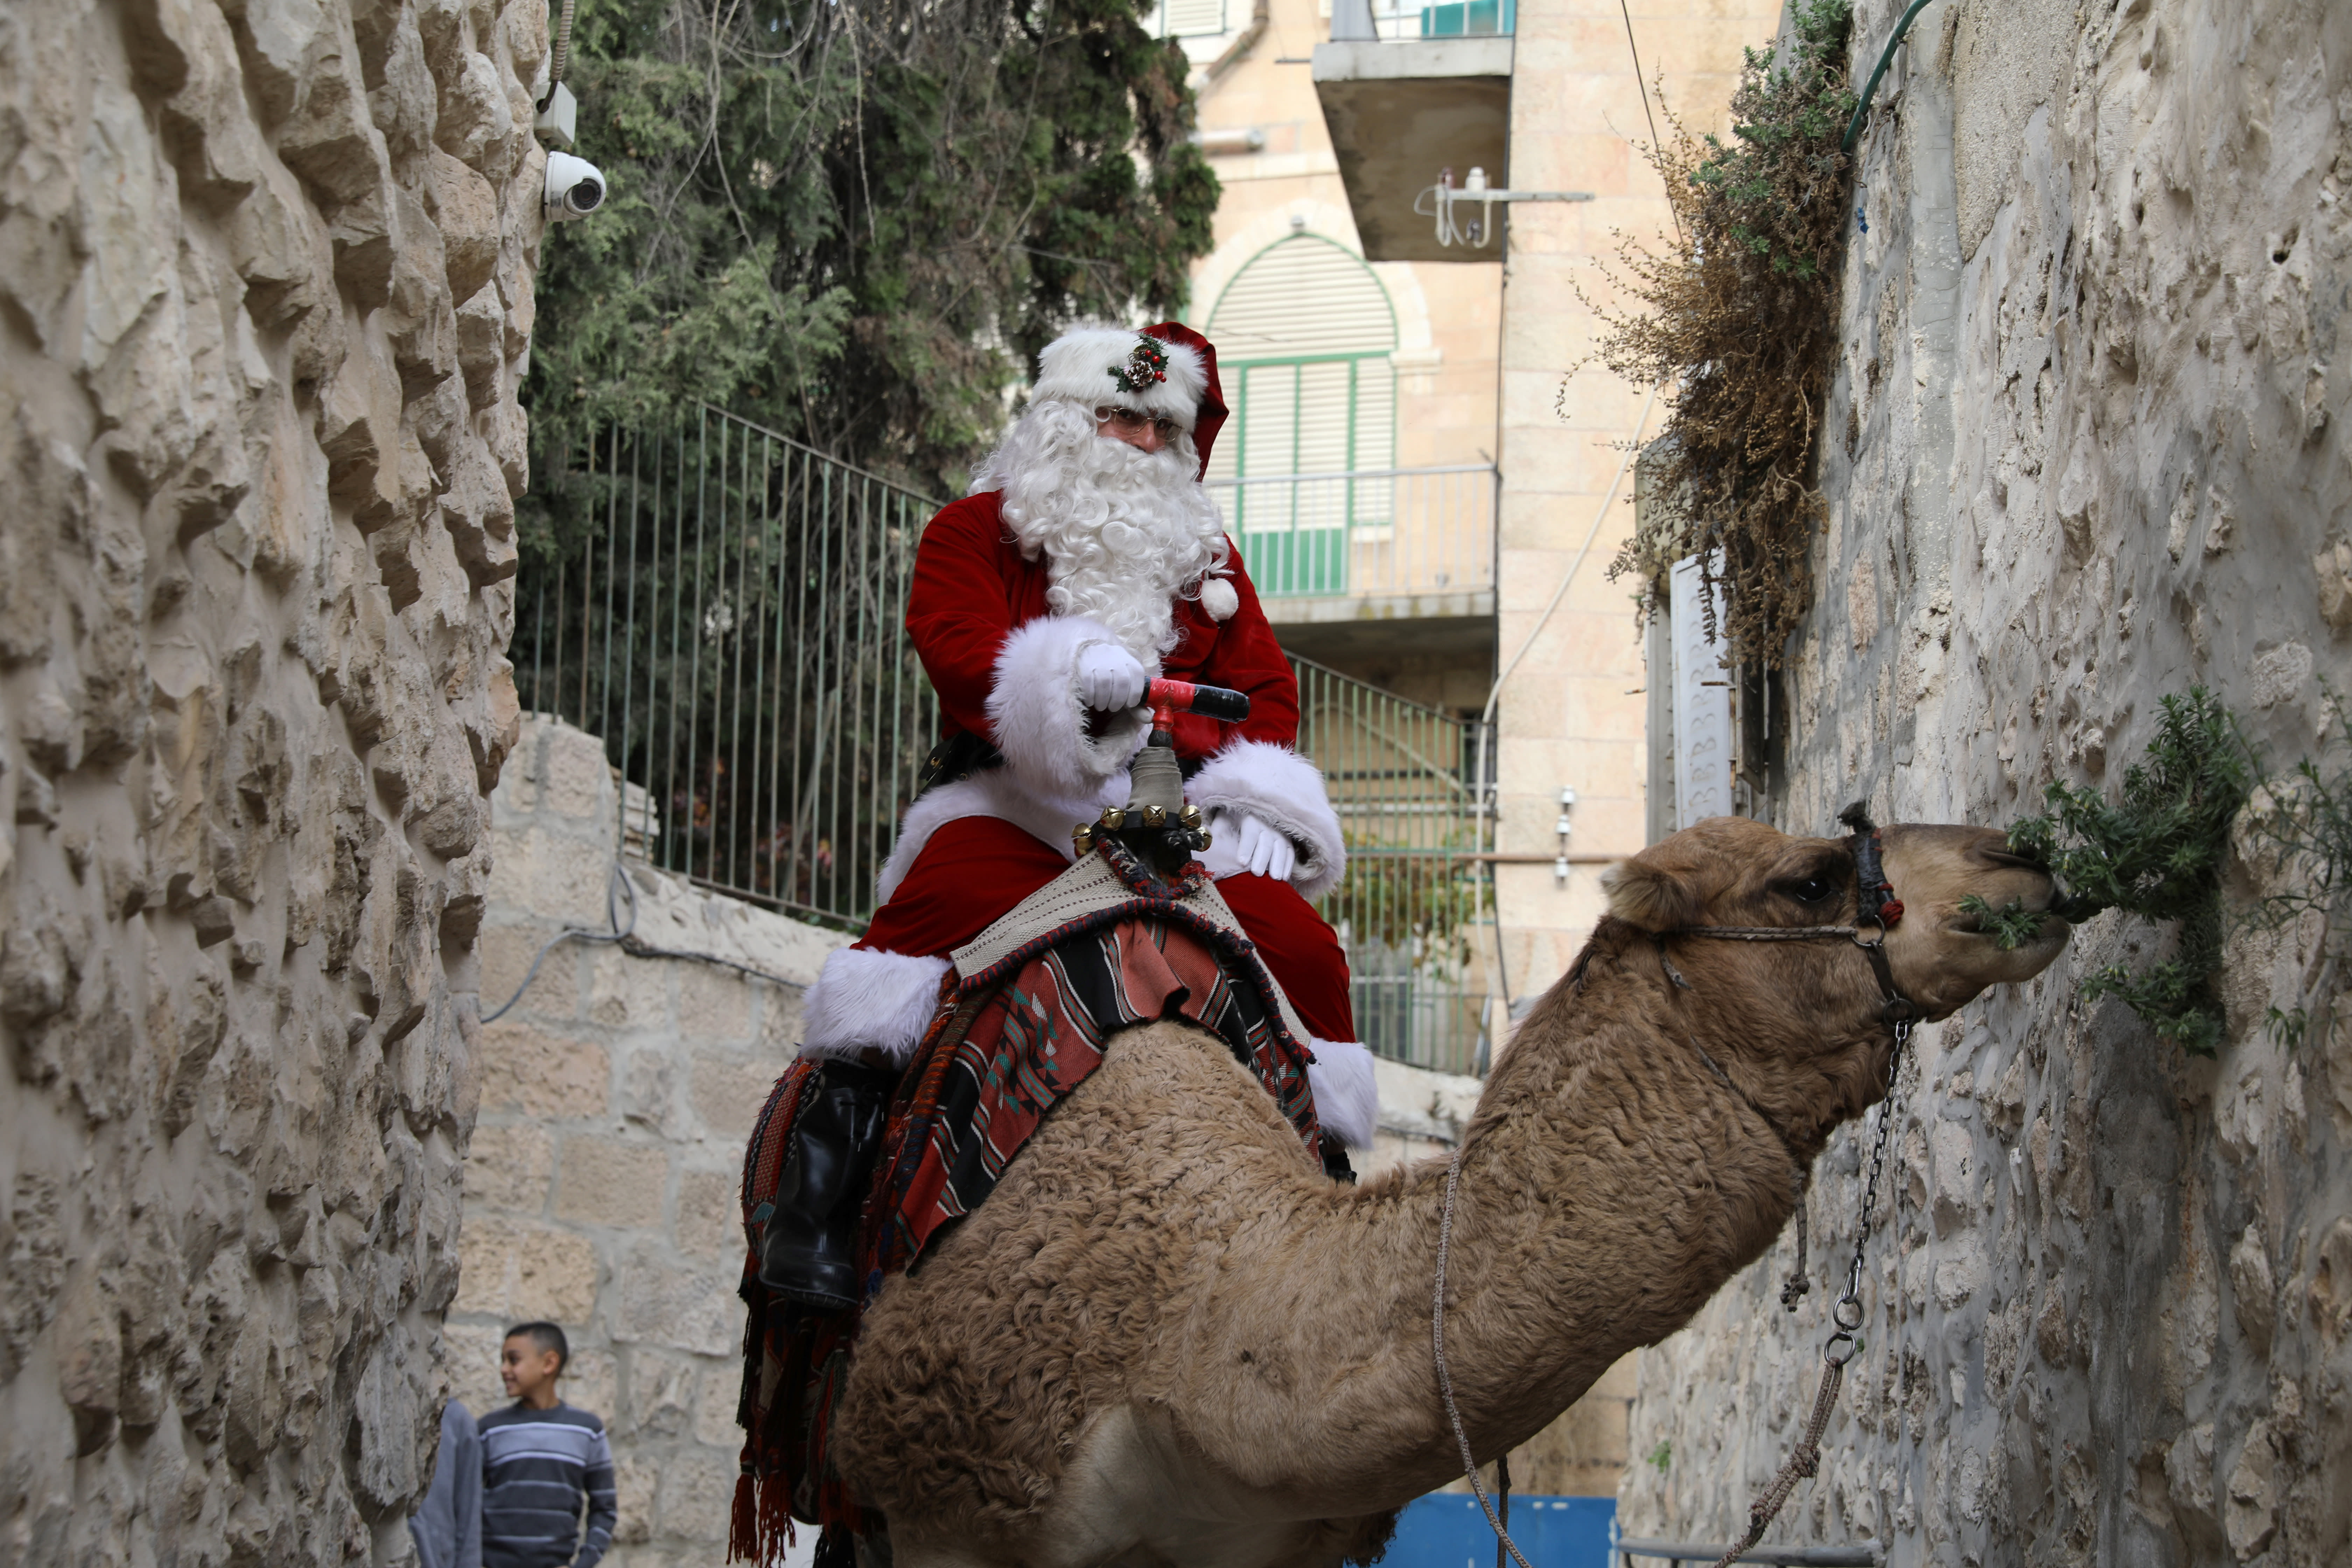 Issa Kassissieh, wearing a Santa Claus costume, rides a camel during the annual Christmas tree distribution by the Jerusalem municipality in Jerusalem's Old City December 21, 2017 (REUTERS/Ammar Awad)